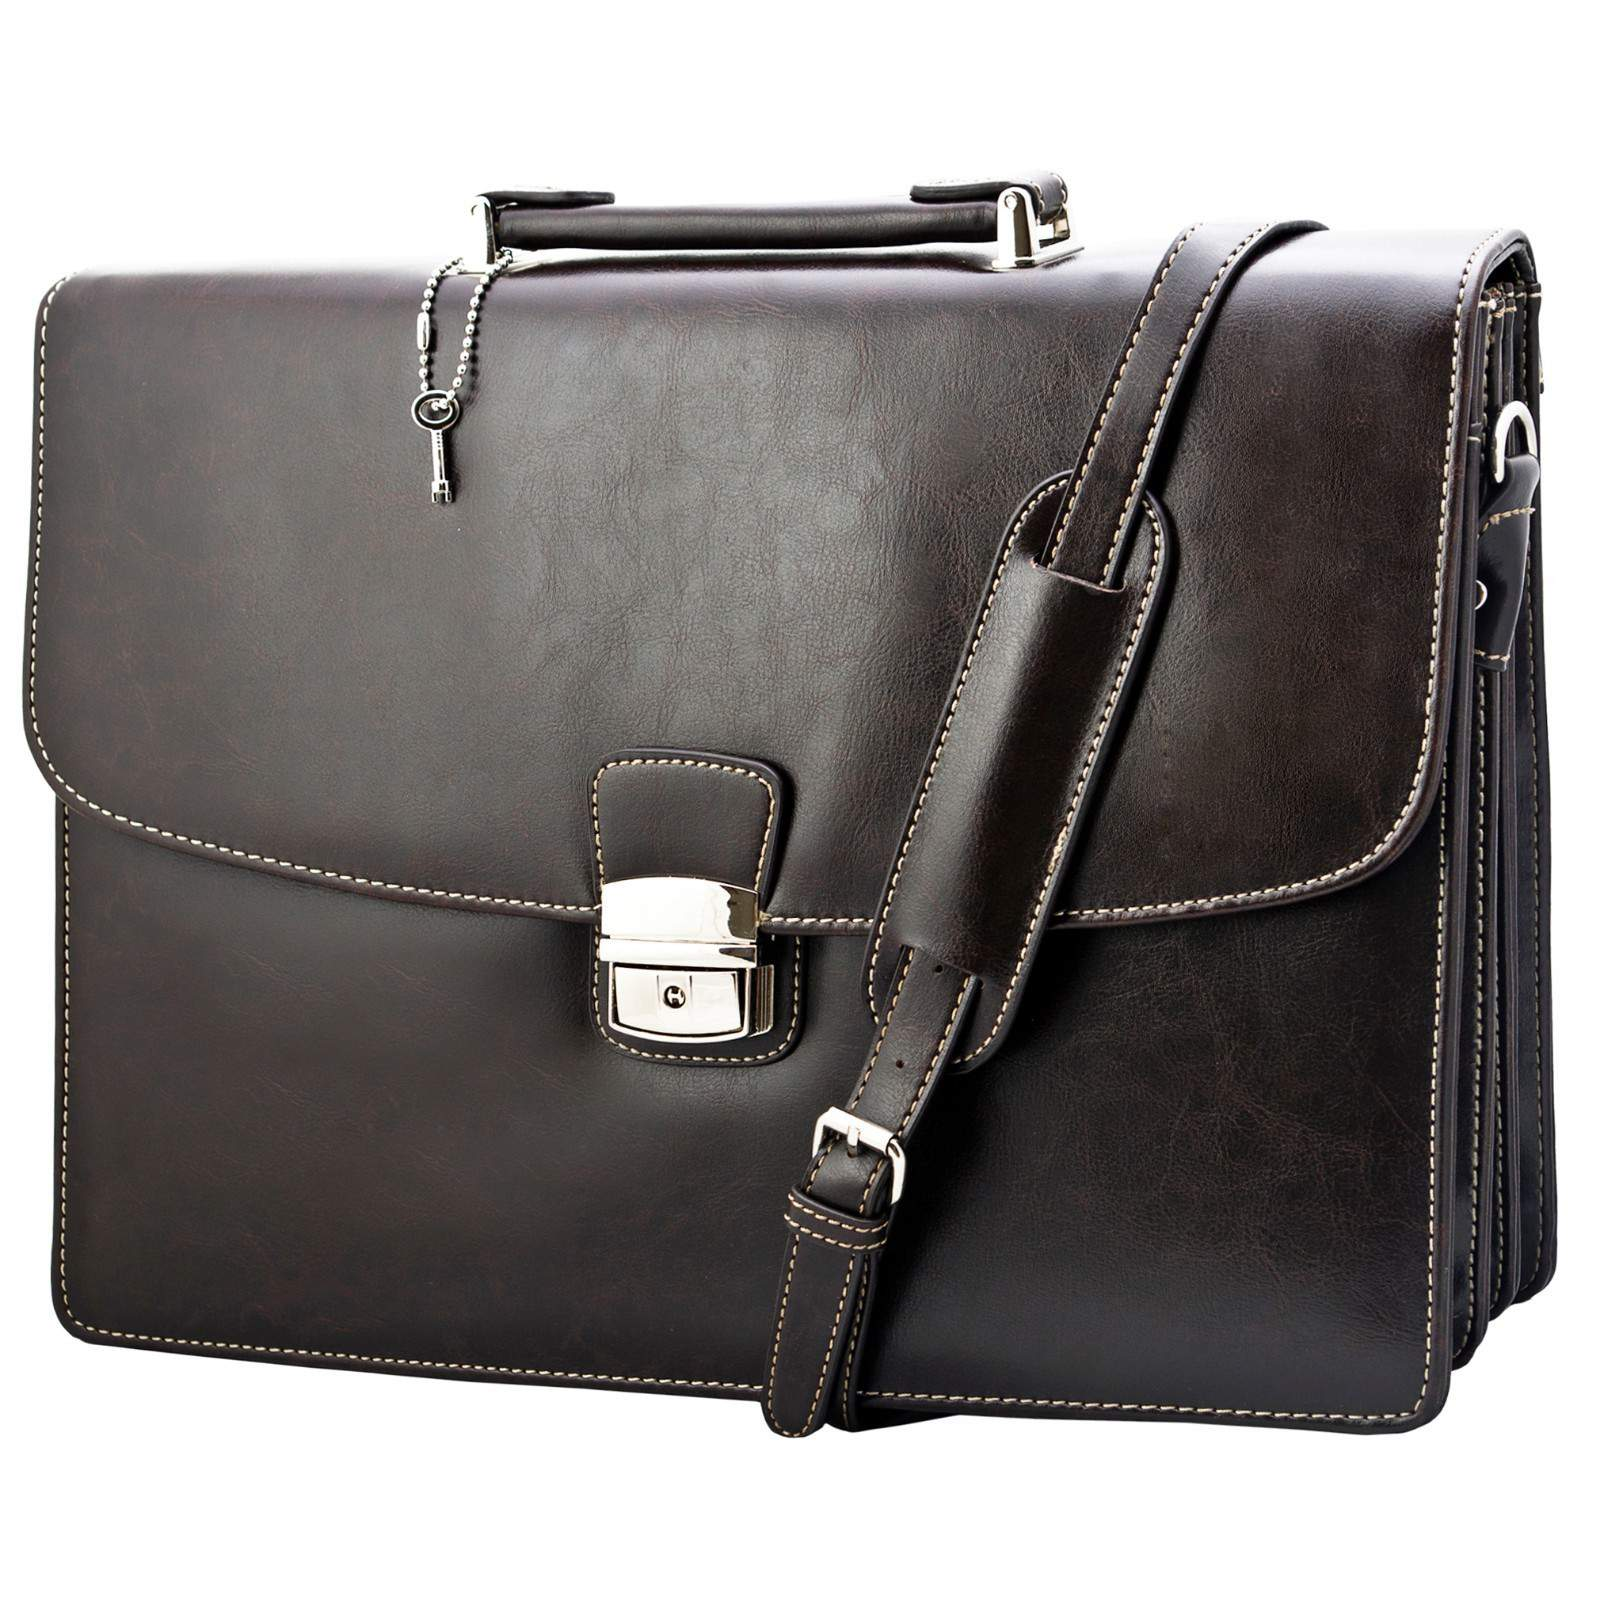 Classic Vintage Professional Men's Leather Carrying Briefcase ...